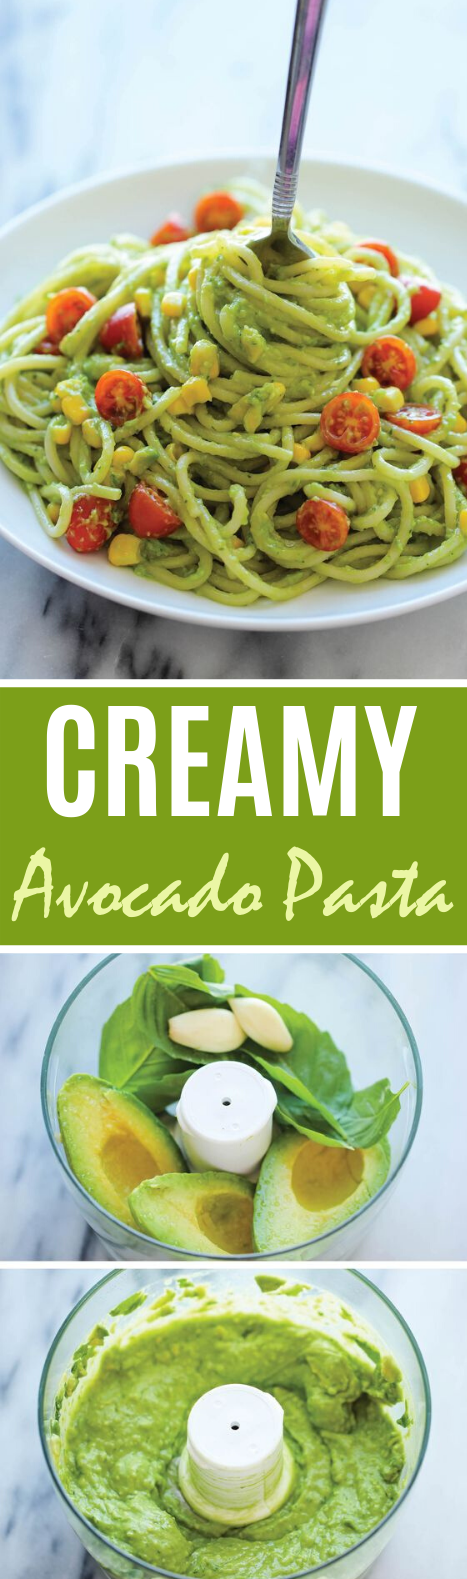 Avocado Pasta #vegan #dinner #pasta #spaghetti #meatless